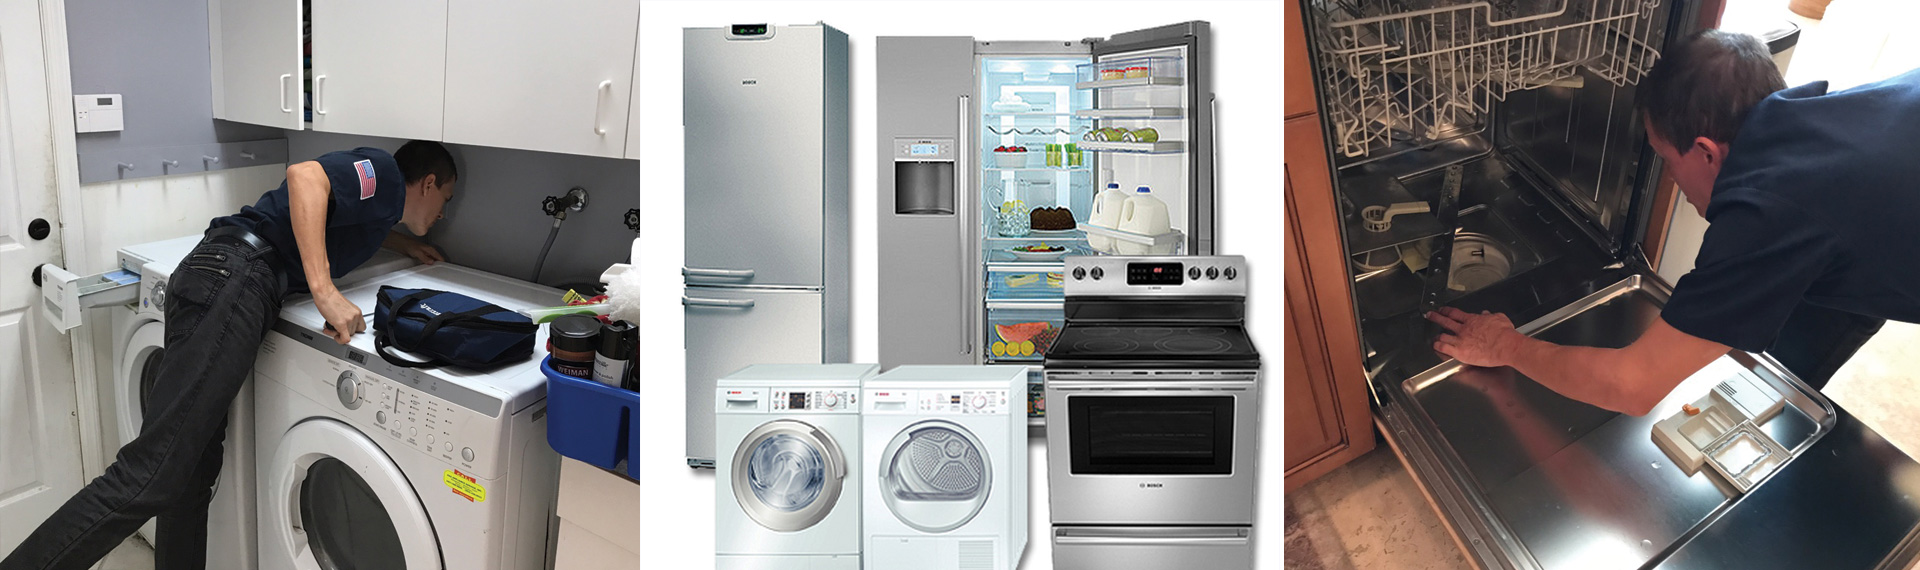 1A Appliance Service Deerfield Beach FL